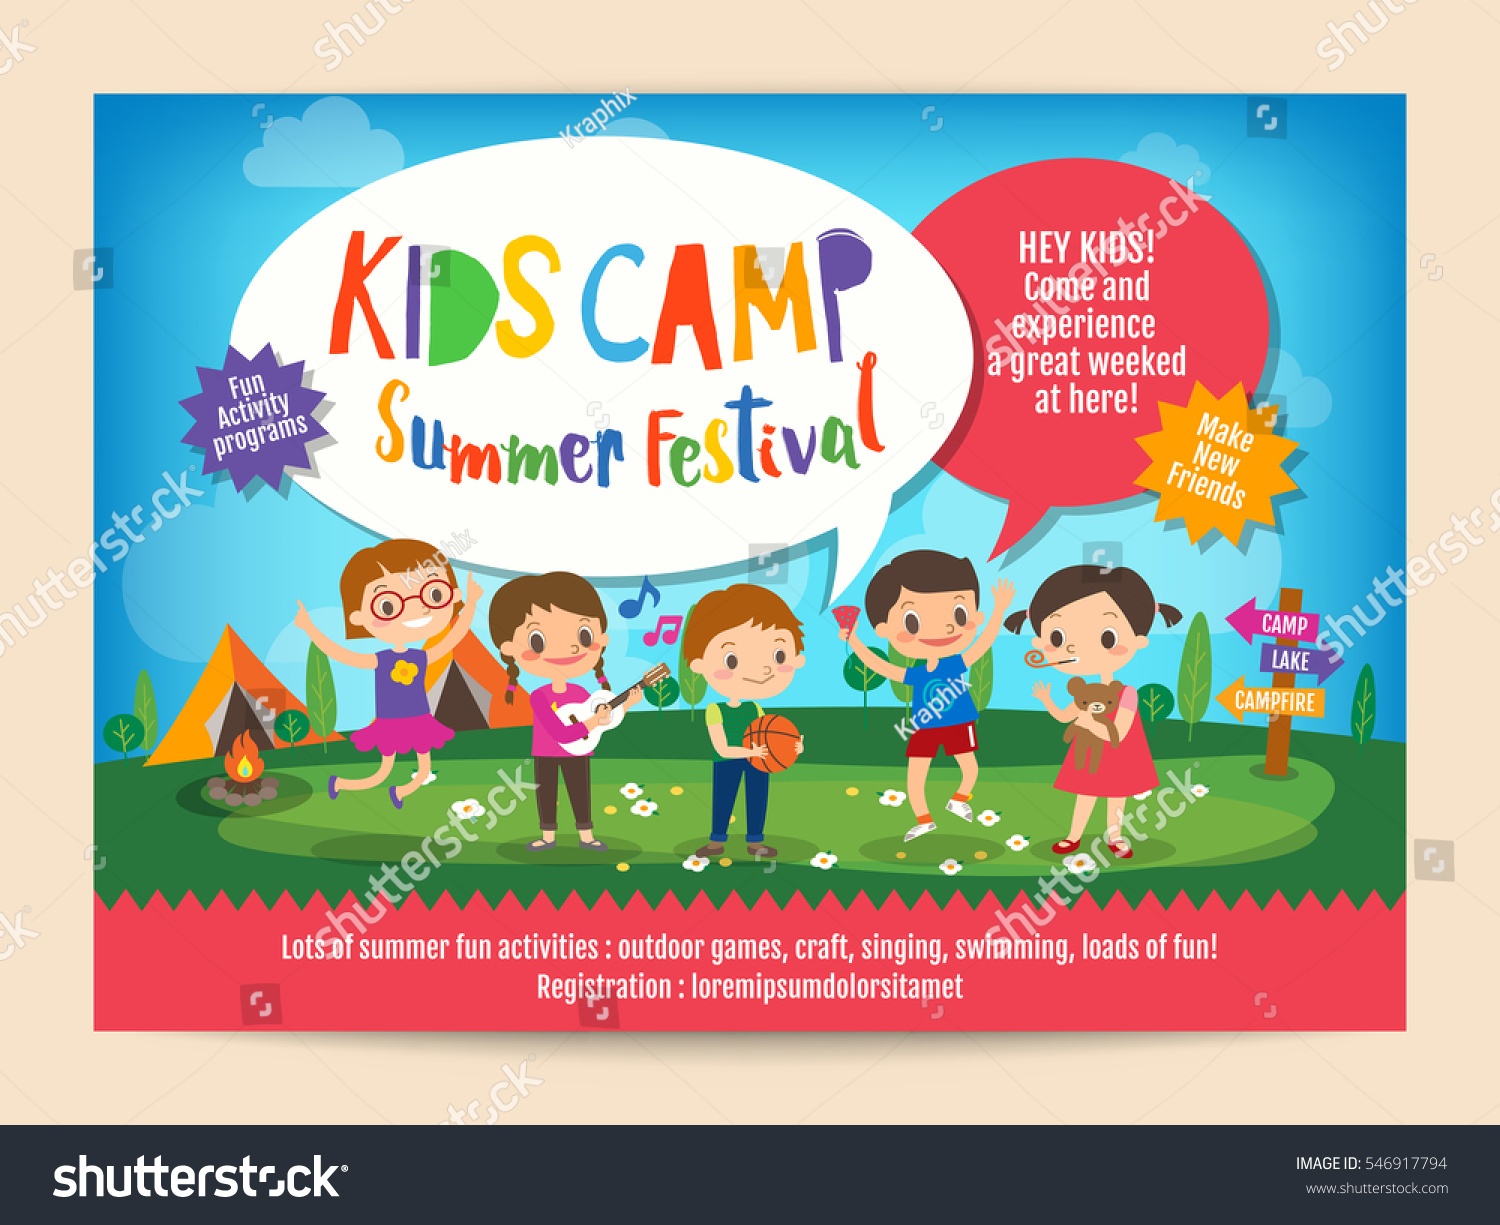 doc advertising poster templates poster templates psd kids summer camp education advertising poster vector advertising poster templates pediatrician child care brochure